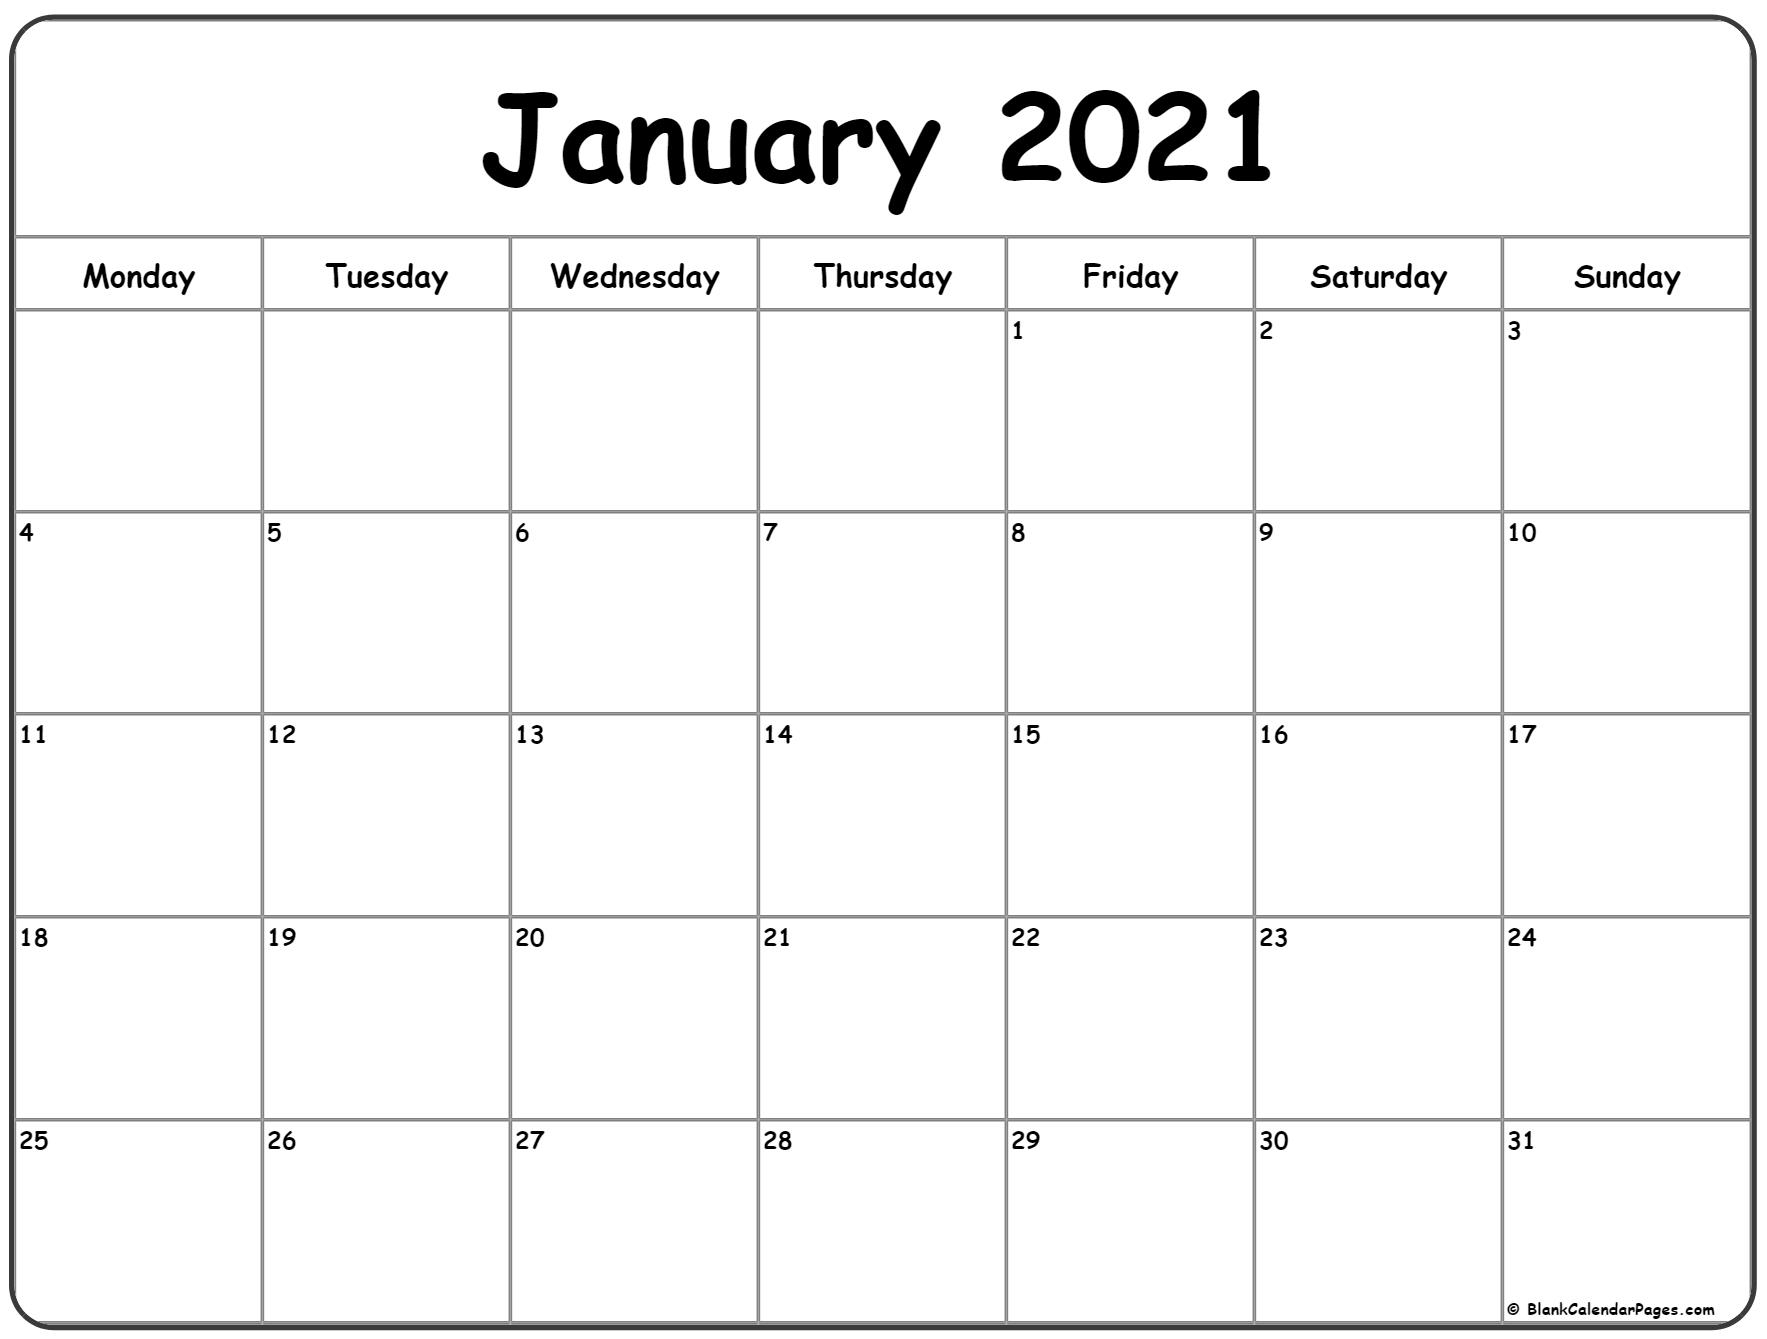 Get Free Printable Caldender 2021 Monday To Sunday